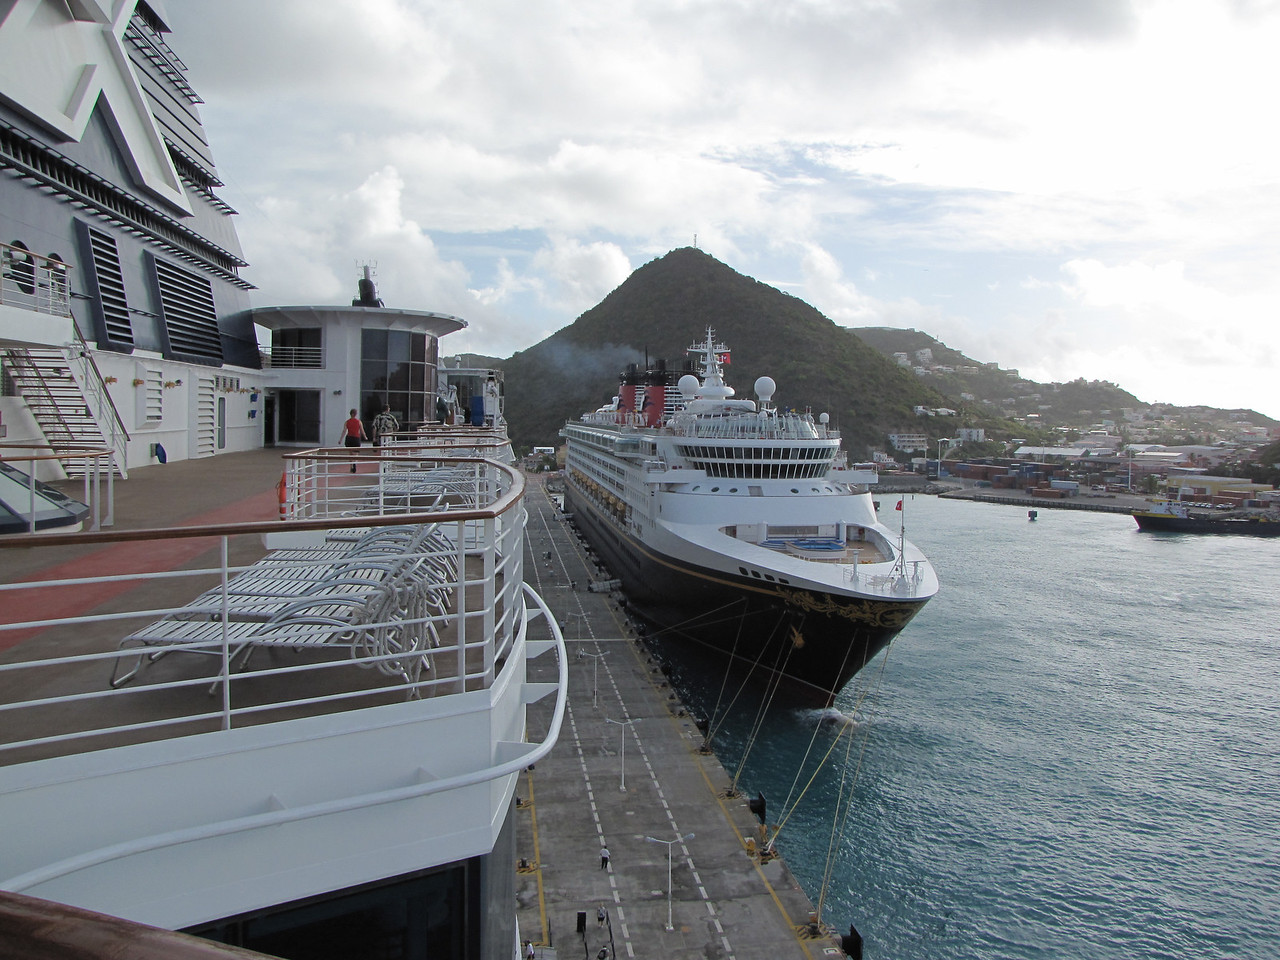 Our normal routine upon arriving at a new port is for me to go out to the upper decks to take a few photos while Sheila is getting ready for the day.  The Disney Magic had arrived in Philipsburg before us.